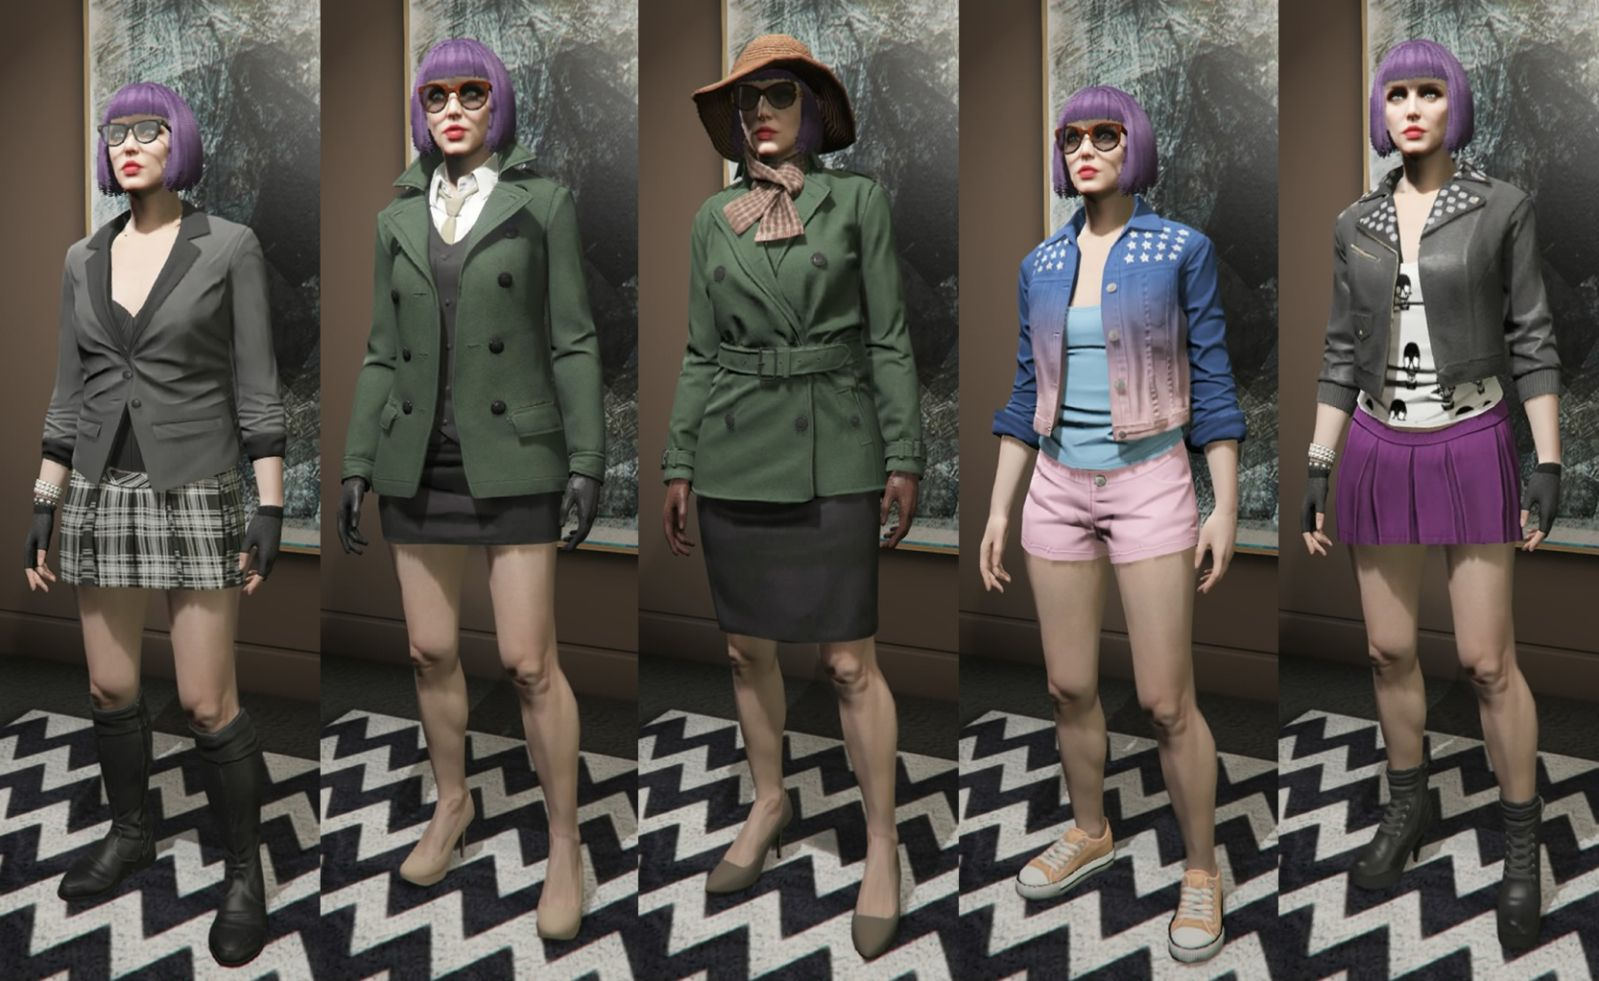 Image Result For Gta Online Outfits Female | Gta | Pinterest